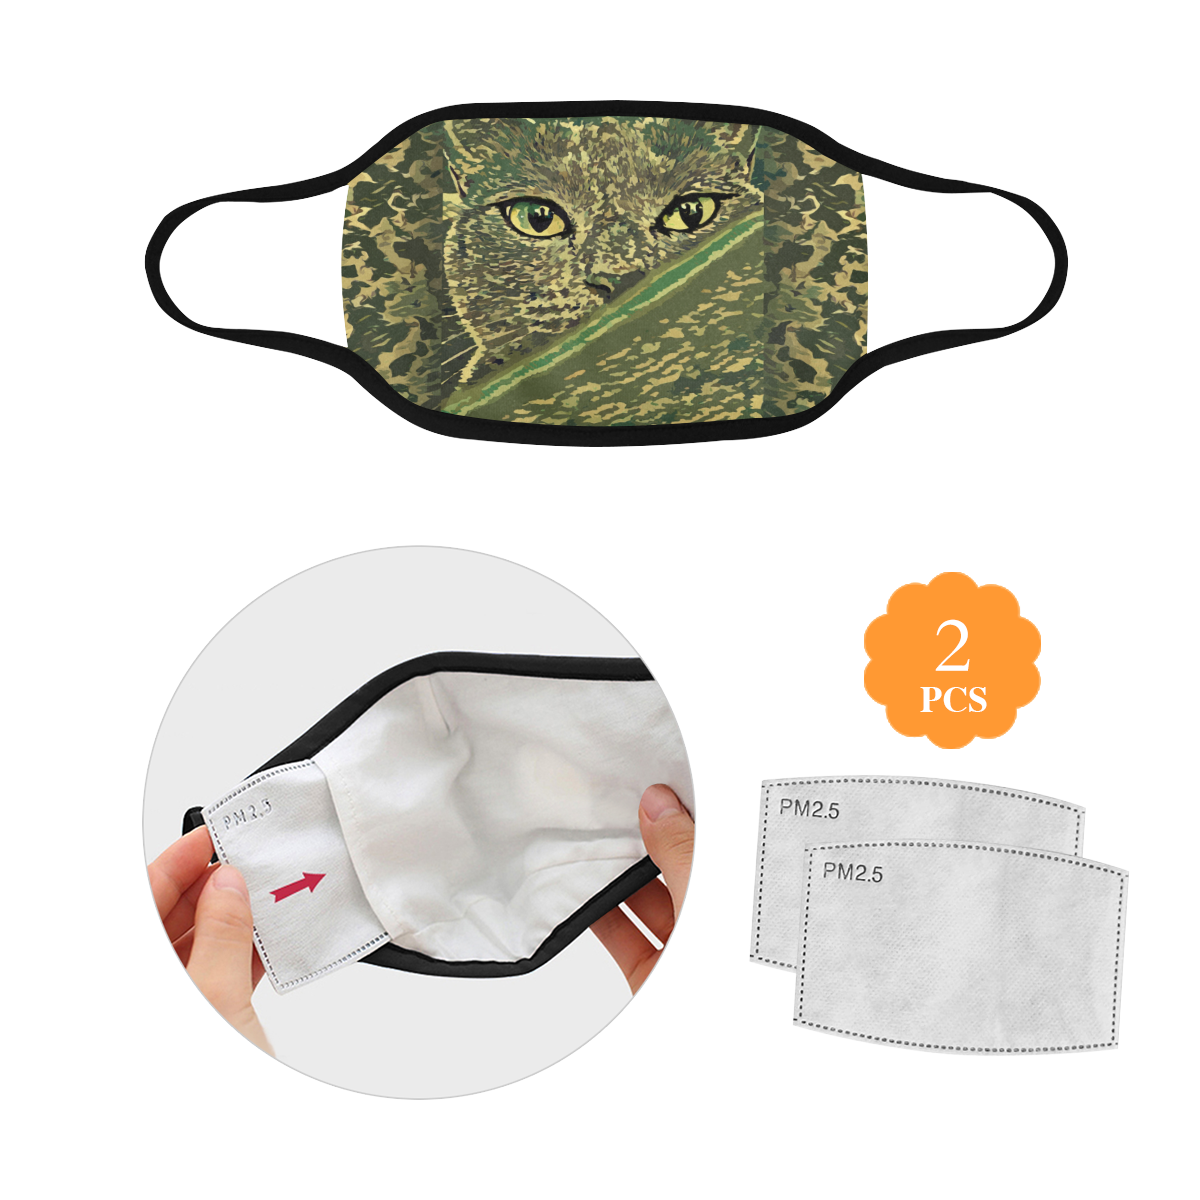 CAT CAMOUFLAGE 3D MASK Mouth Mask in One Piece (2 Filters Included) (Model M02) (Non-medical Products)